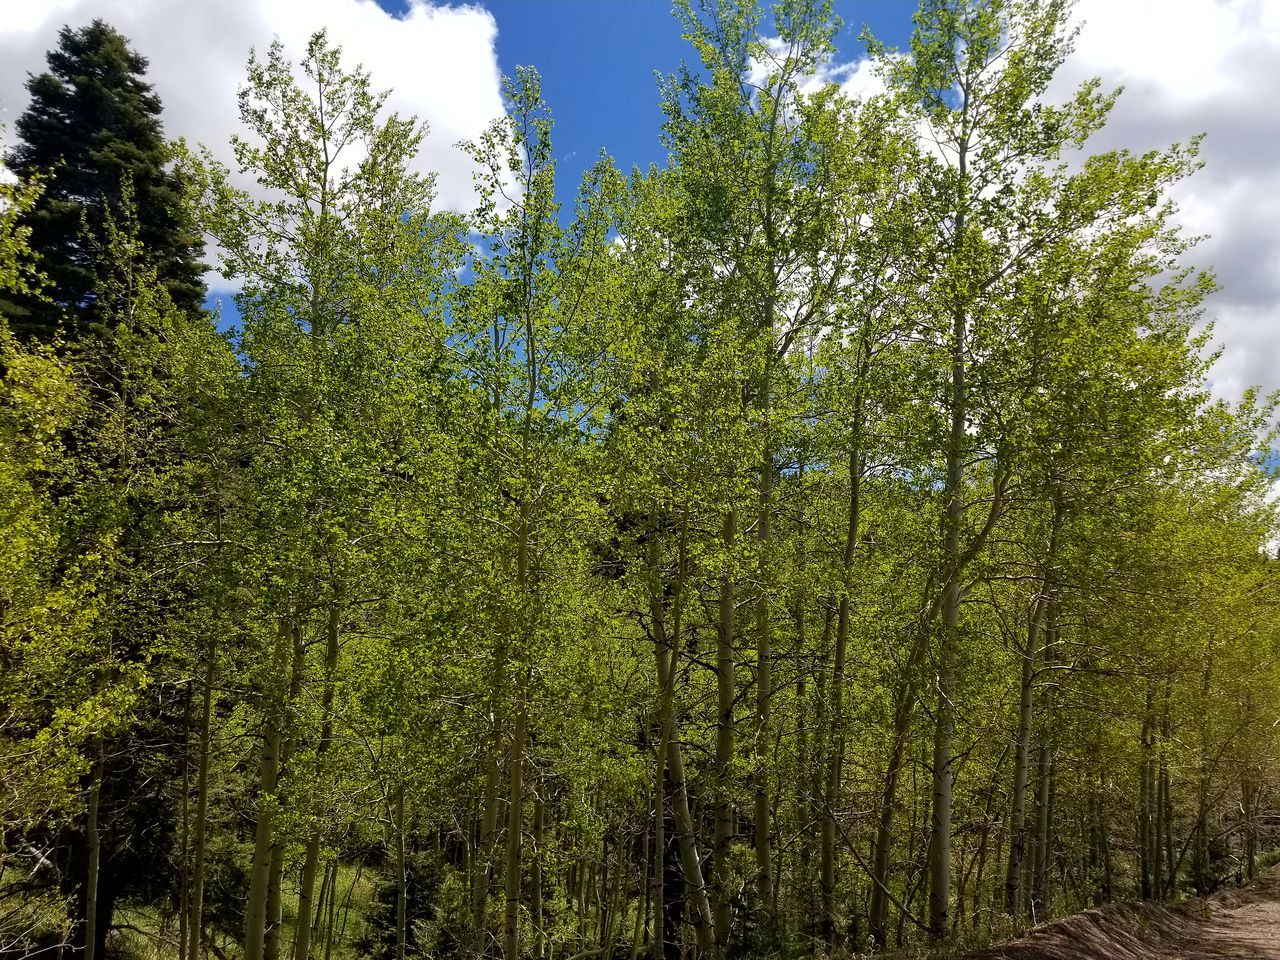 tree, nature, growth, forest, green color, beauty in nature, no people, outdoors, day, tranquility, sky, scenics